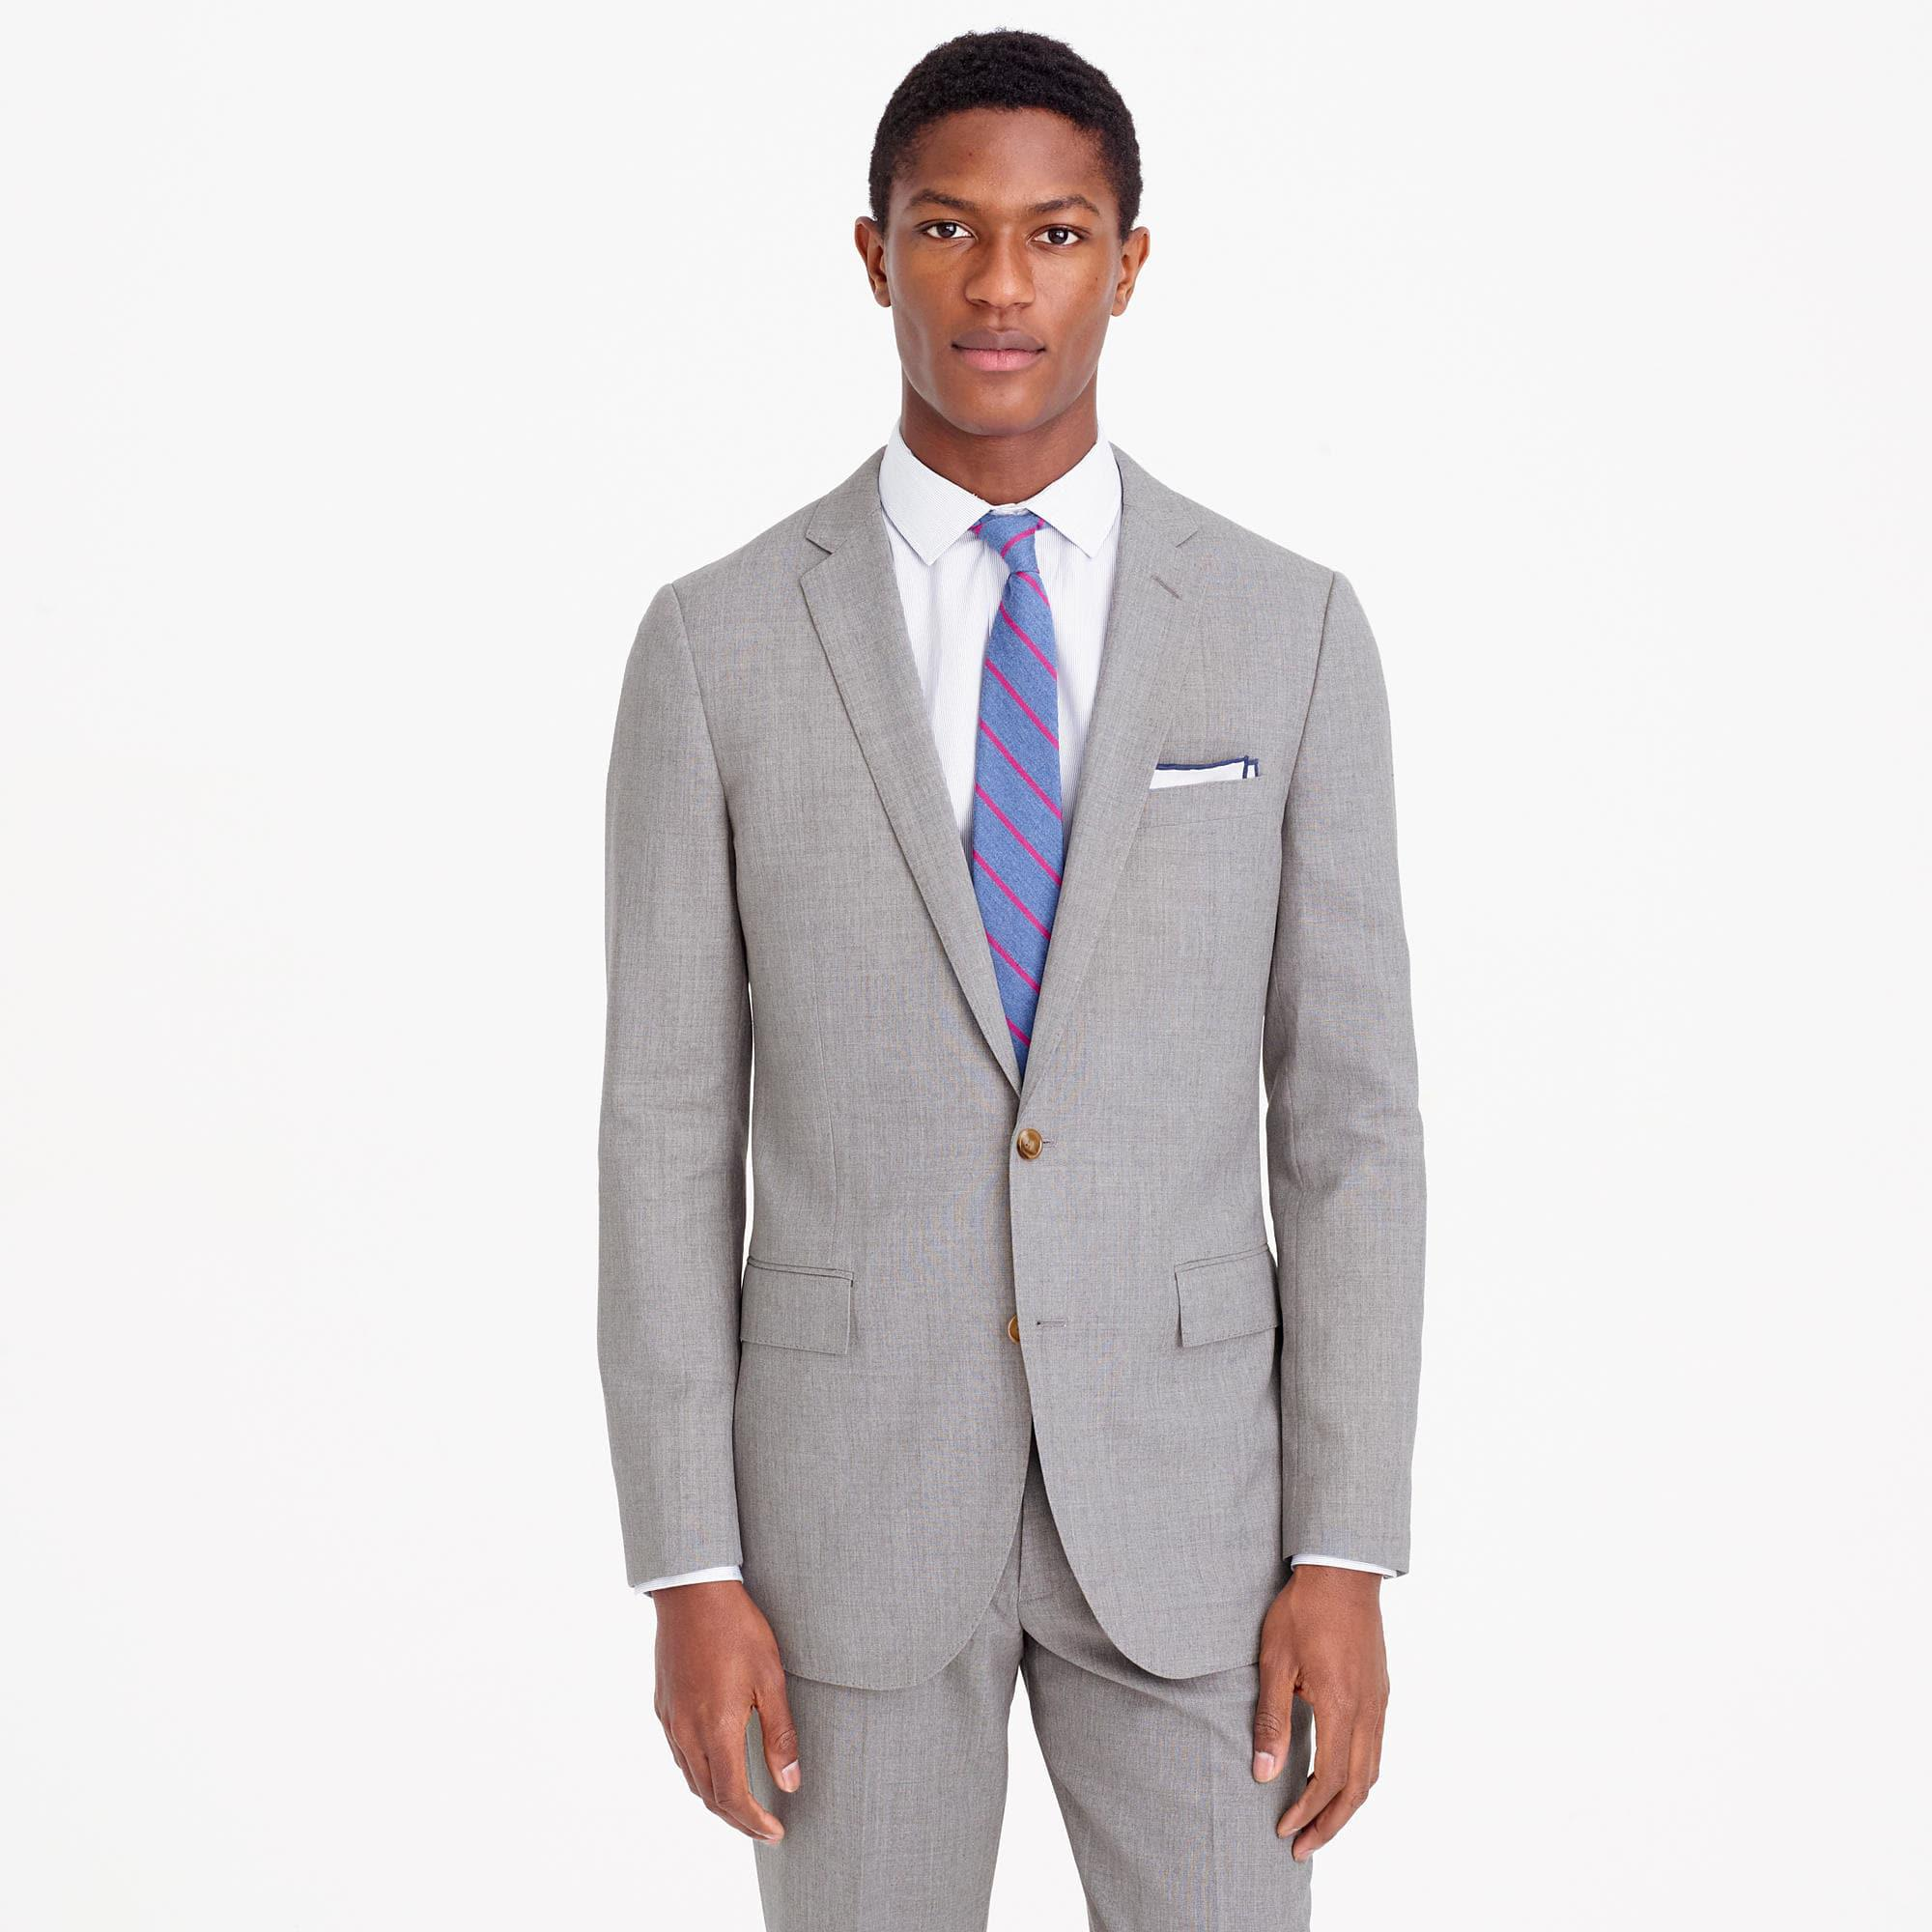 hardy blend fit suit button amies gray grey light tailored jacket mohair mens itm